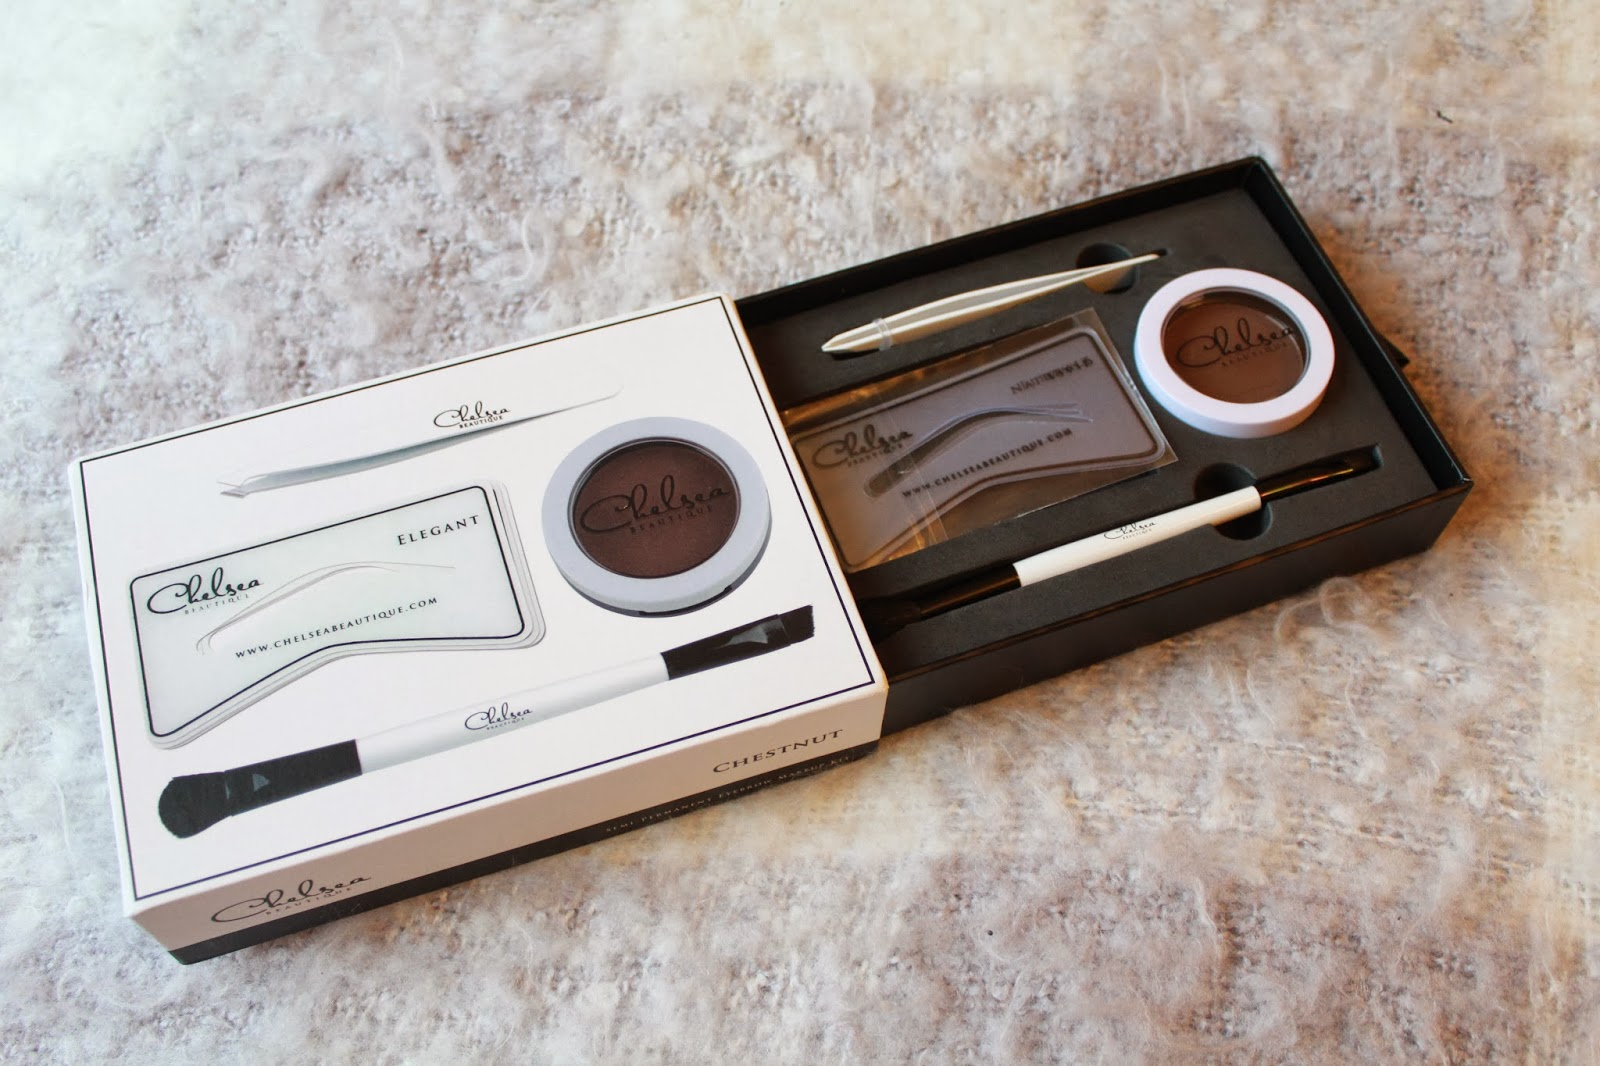 Chelsea Boutique Chestnut Eyebrow Kit